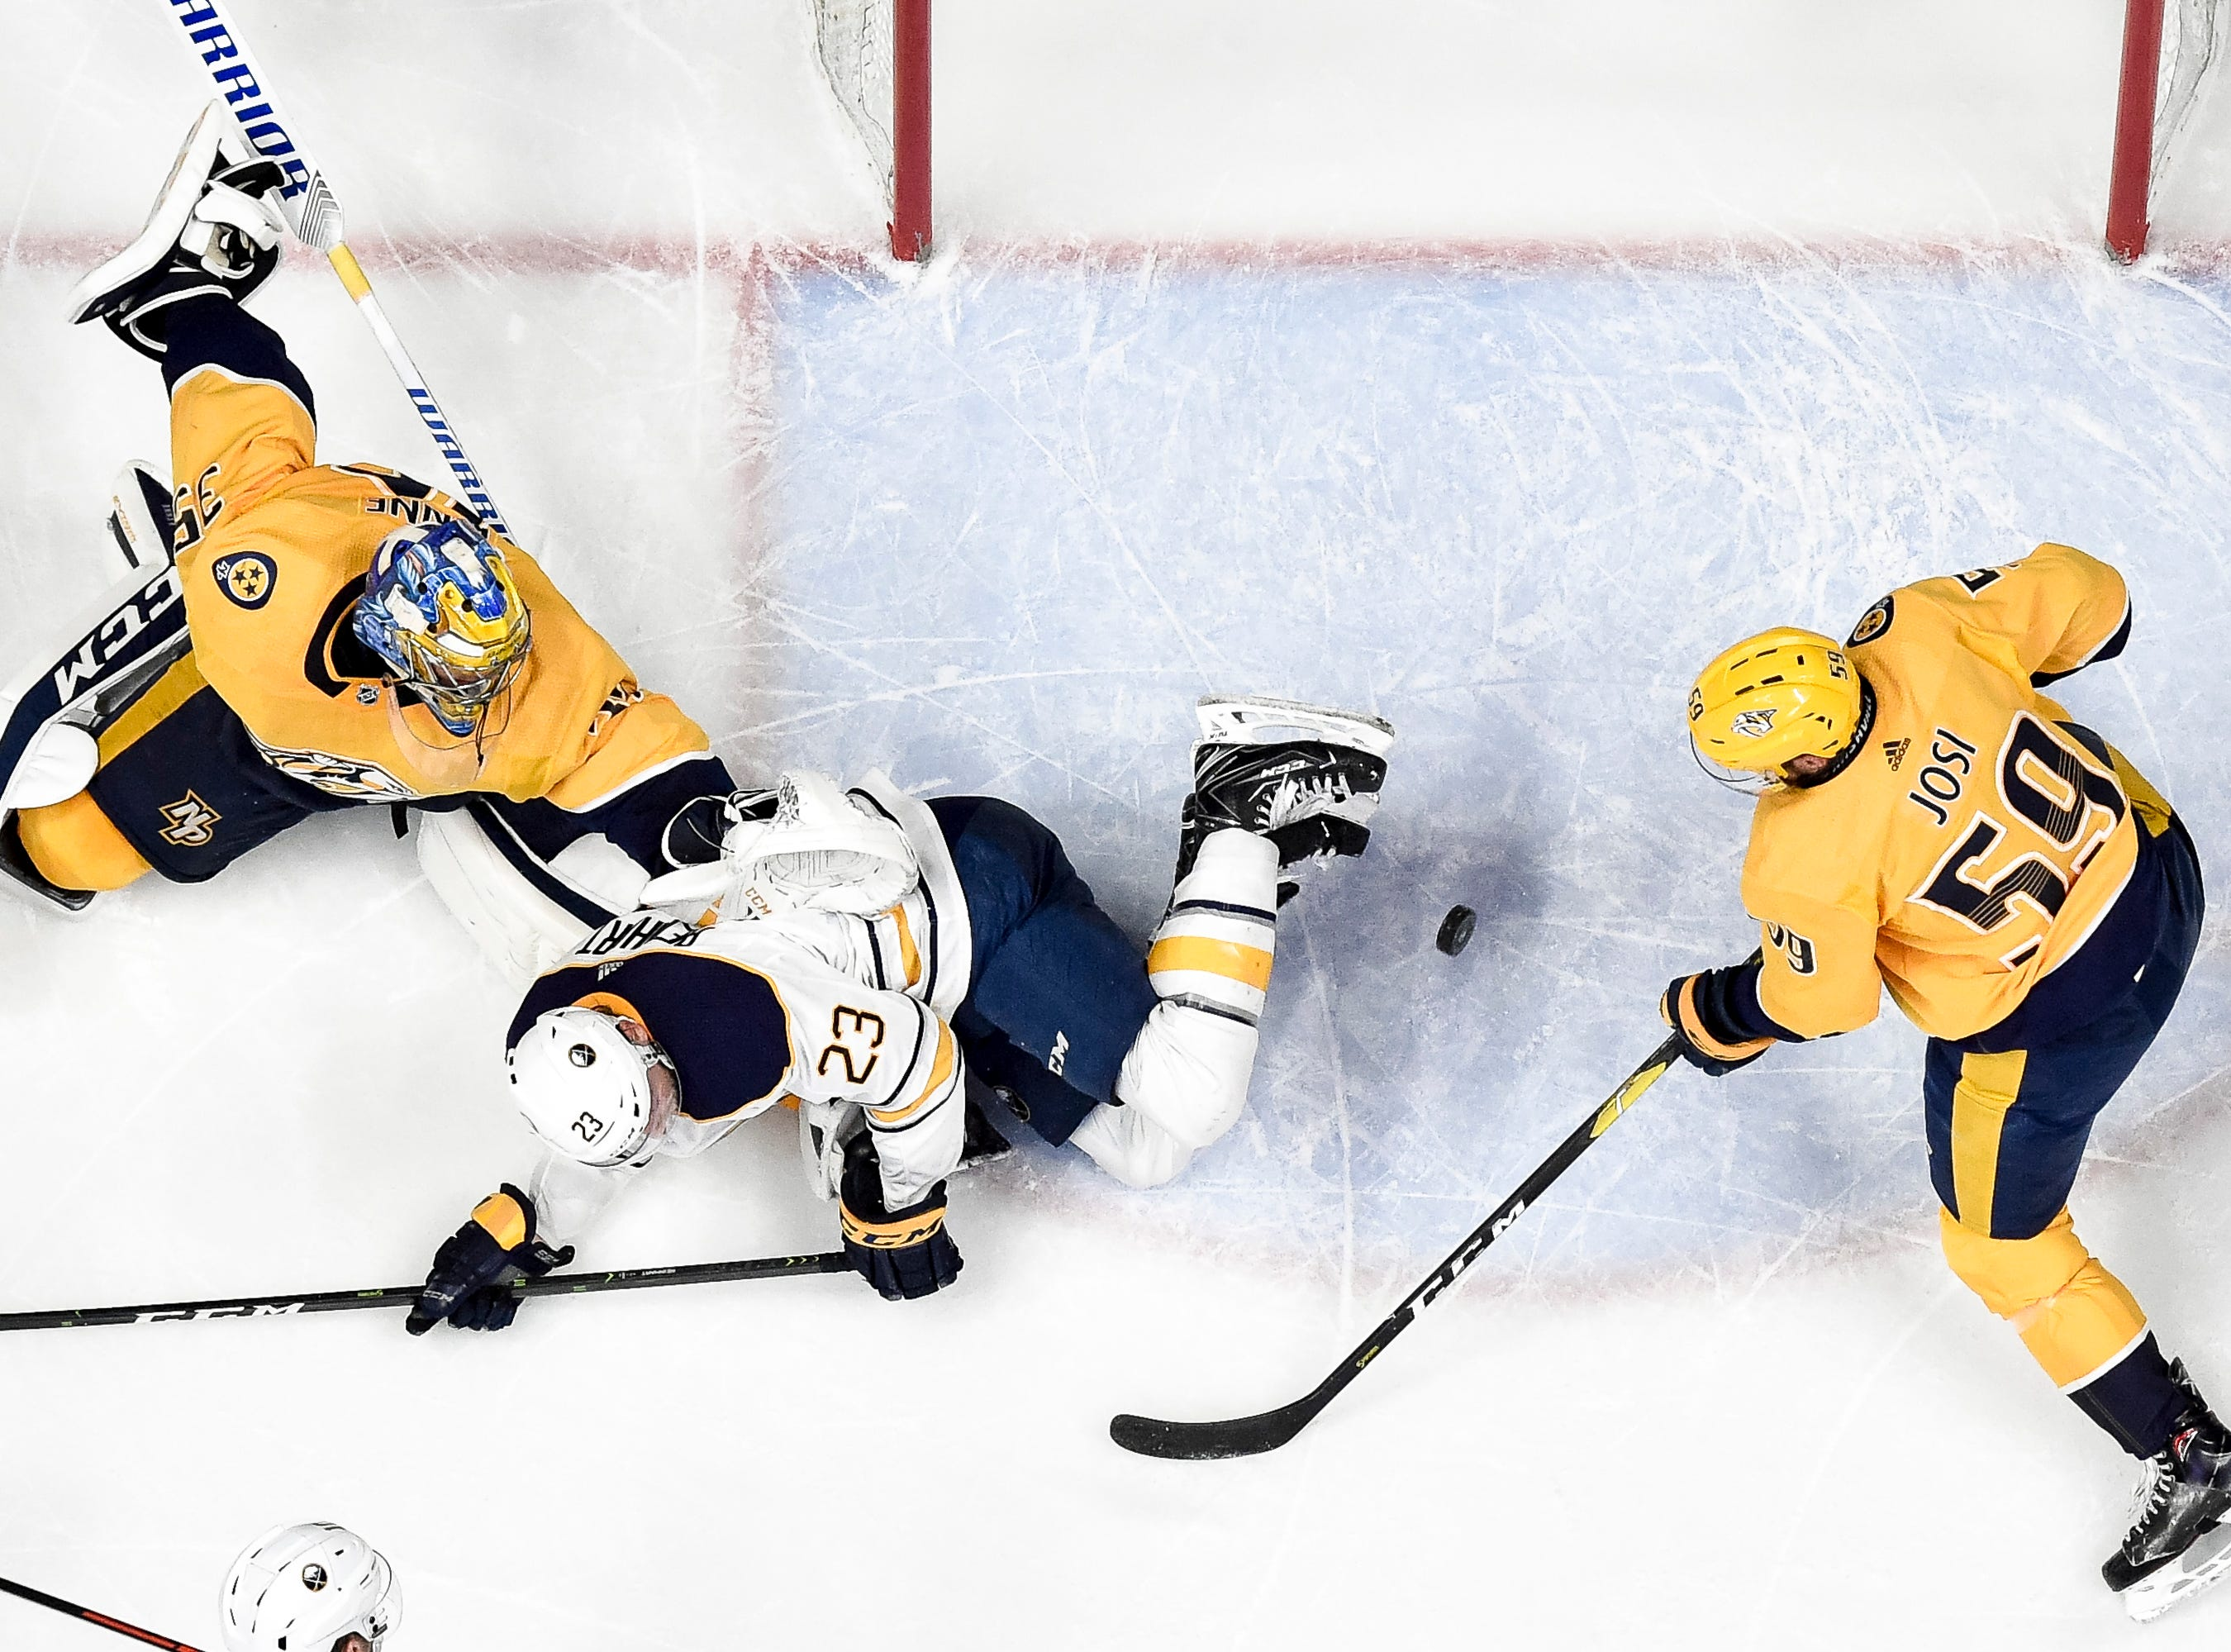 Nashville Predators goaltender Pekka Rinne (35) and defenseman Roman Josi (59) defend against Buffalo Sabres center Sam Reinhart (23) during the third period at Bridgestone Arena in Nashville, Tenn., Monday, Dec. 3, 2018.